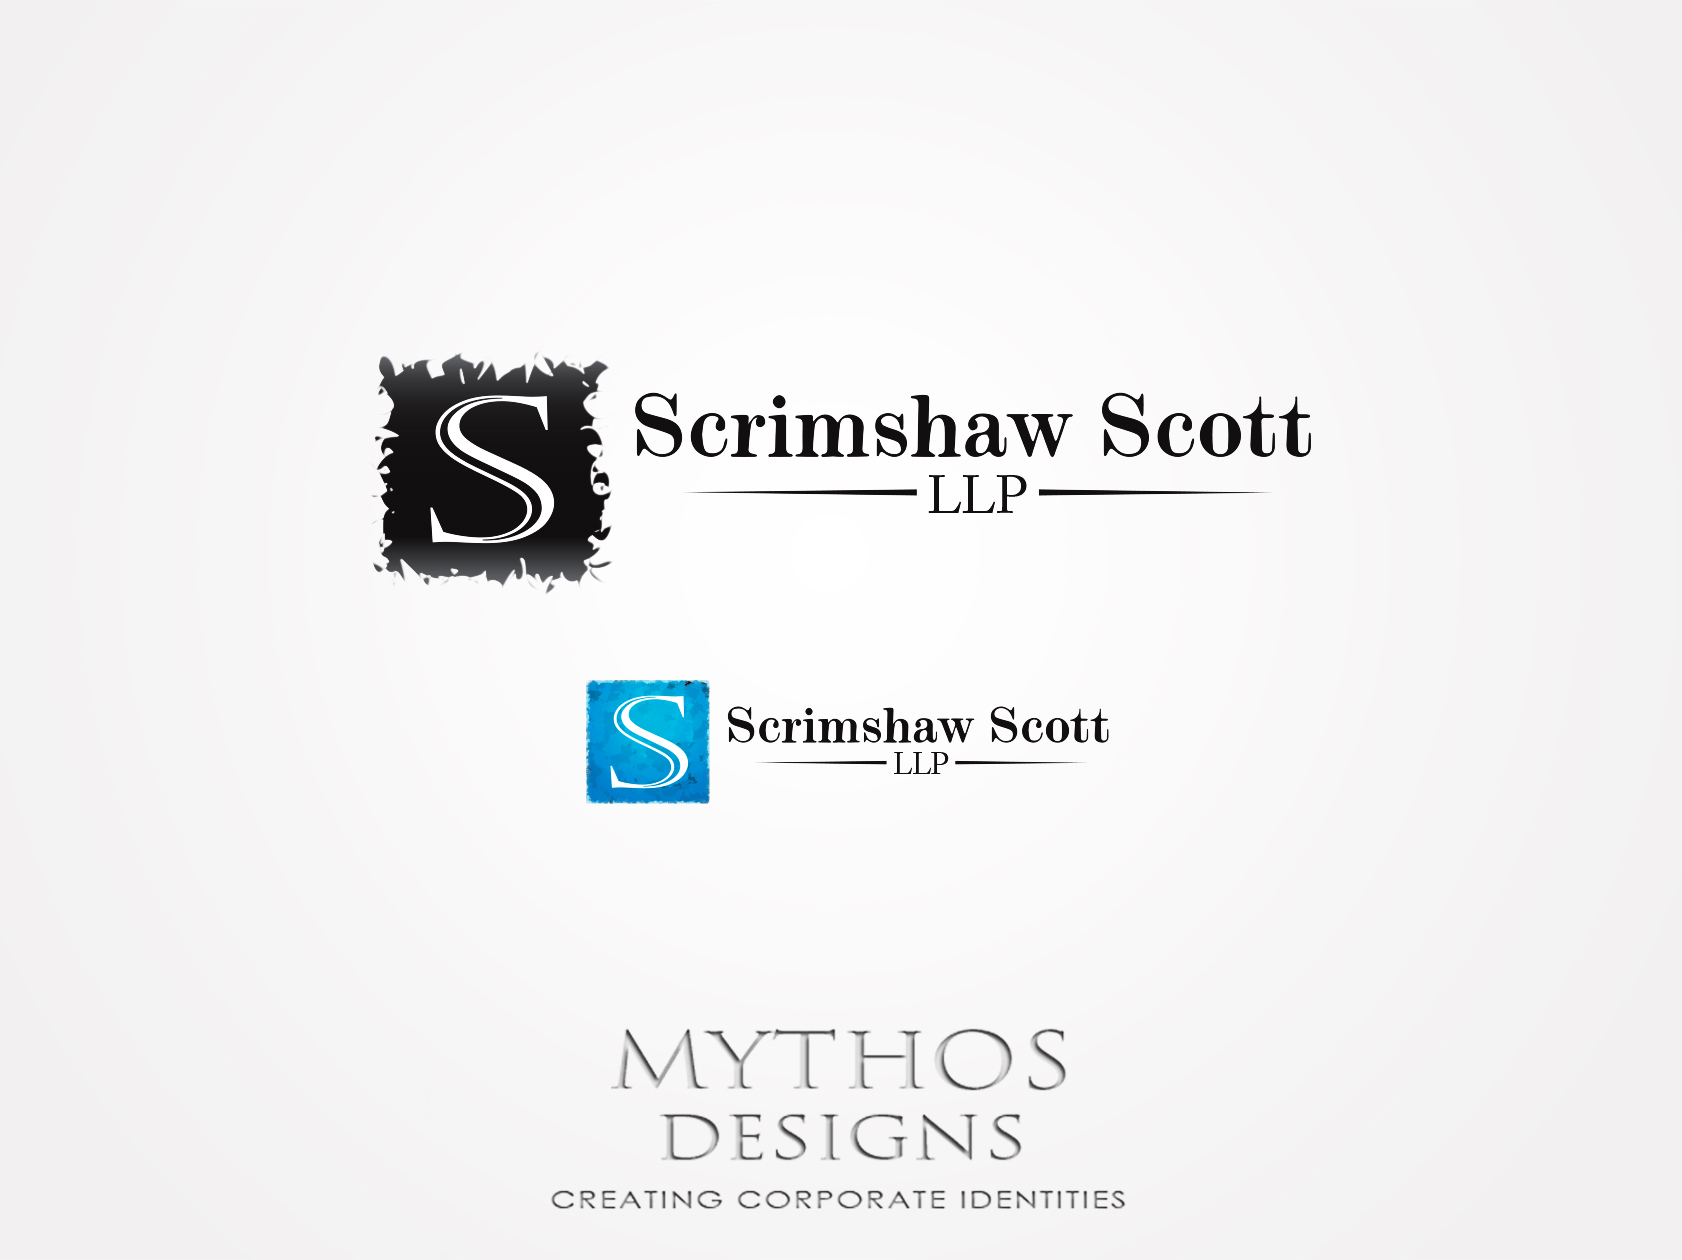 Logo Design by Mythos Designs - Entry No. 56 in the Logo Design Contest Creative Logo Design for Scrimshaw Scott LLP.